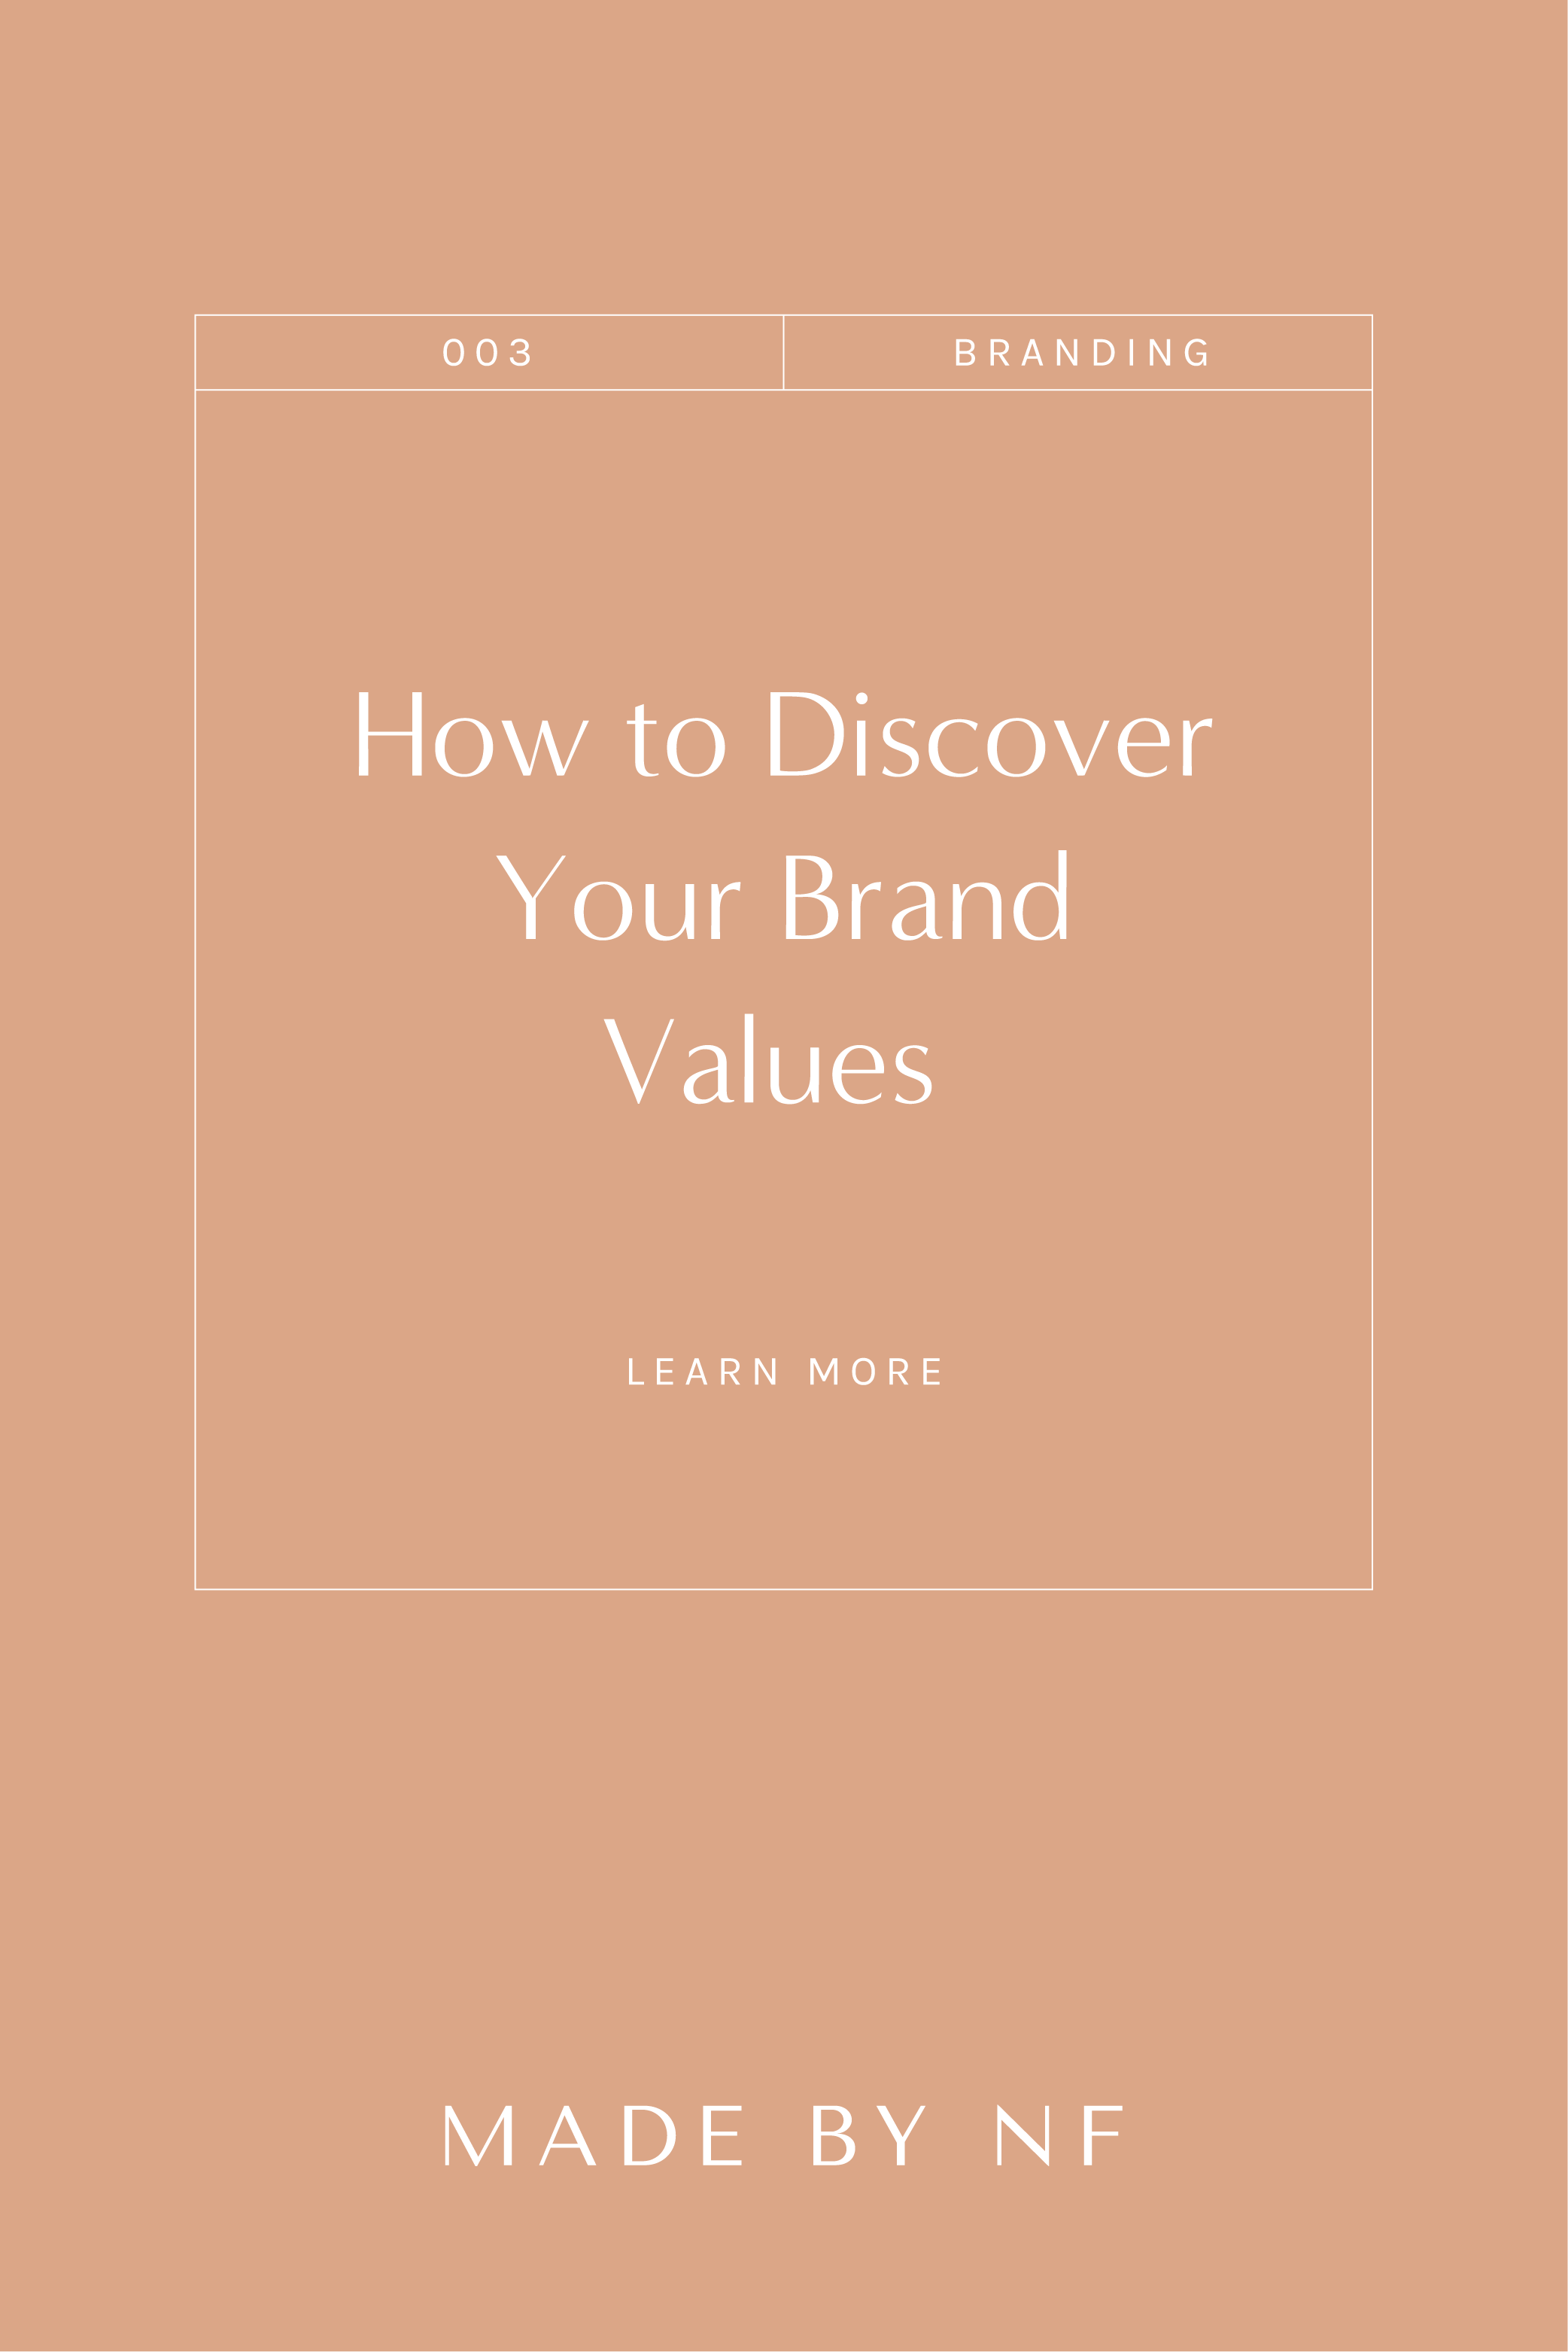 How to Create your brand values for small businesses - Crafting your brand values - made by nf